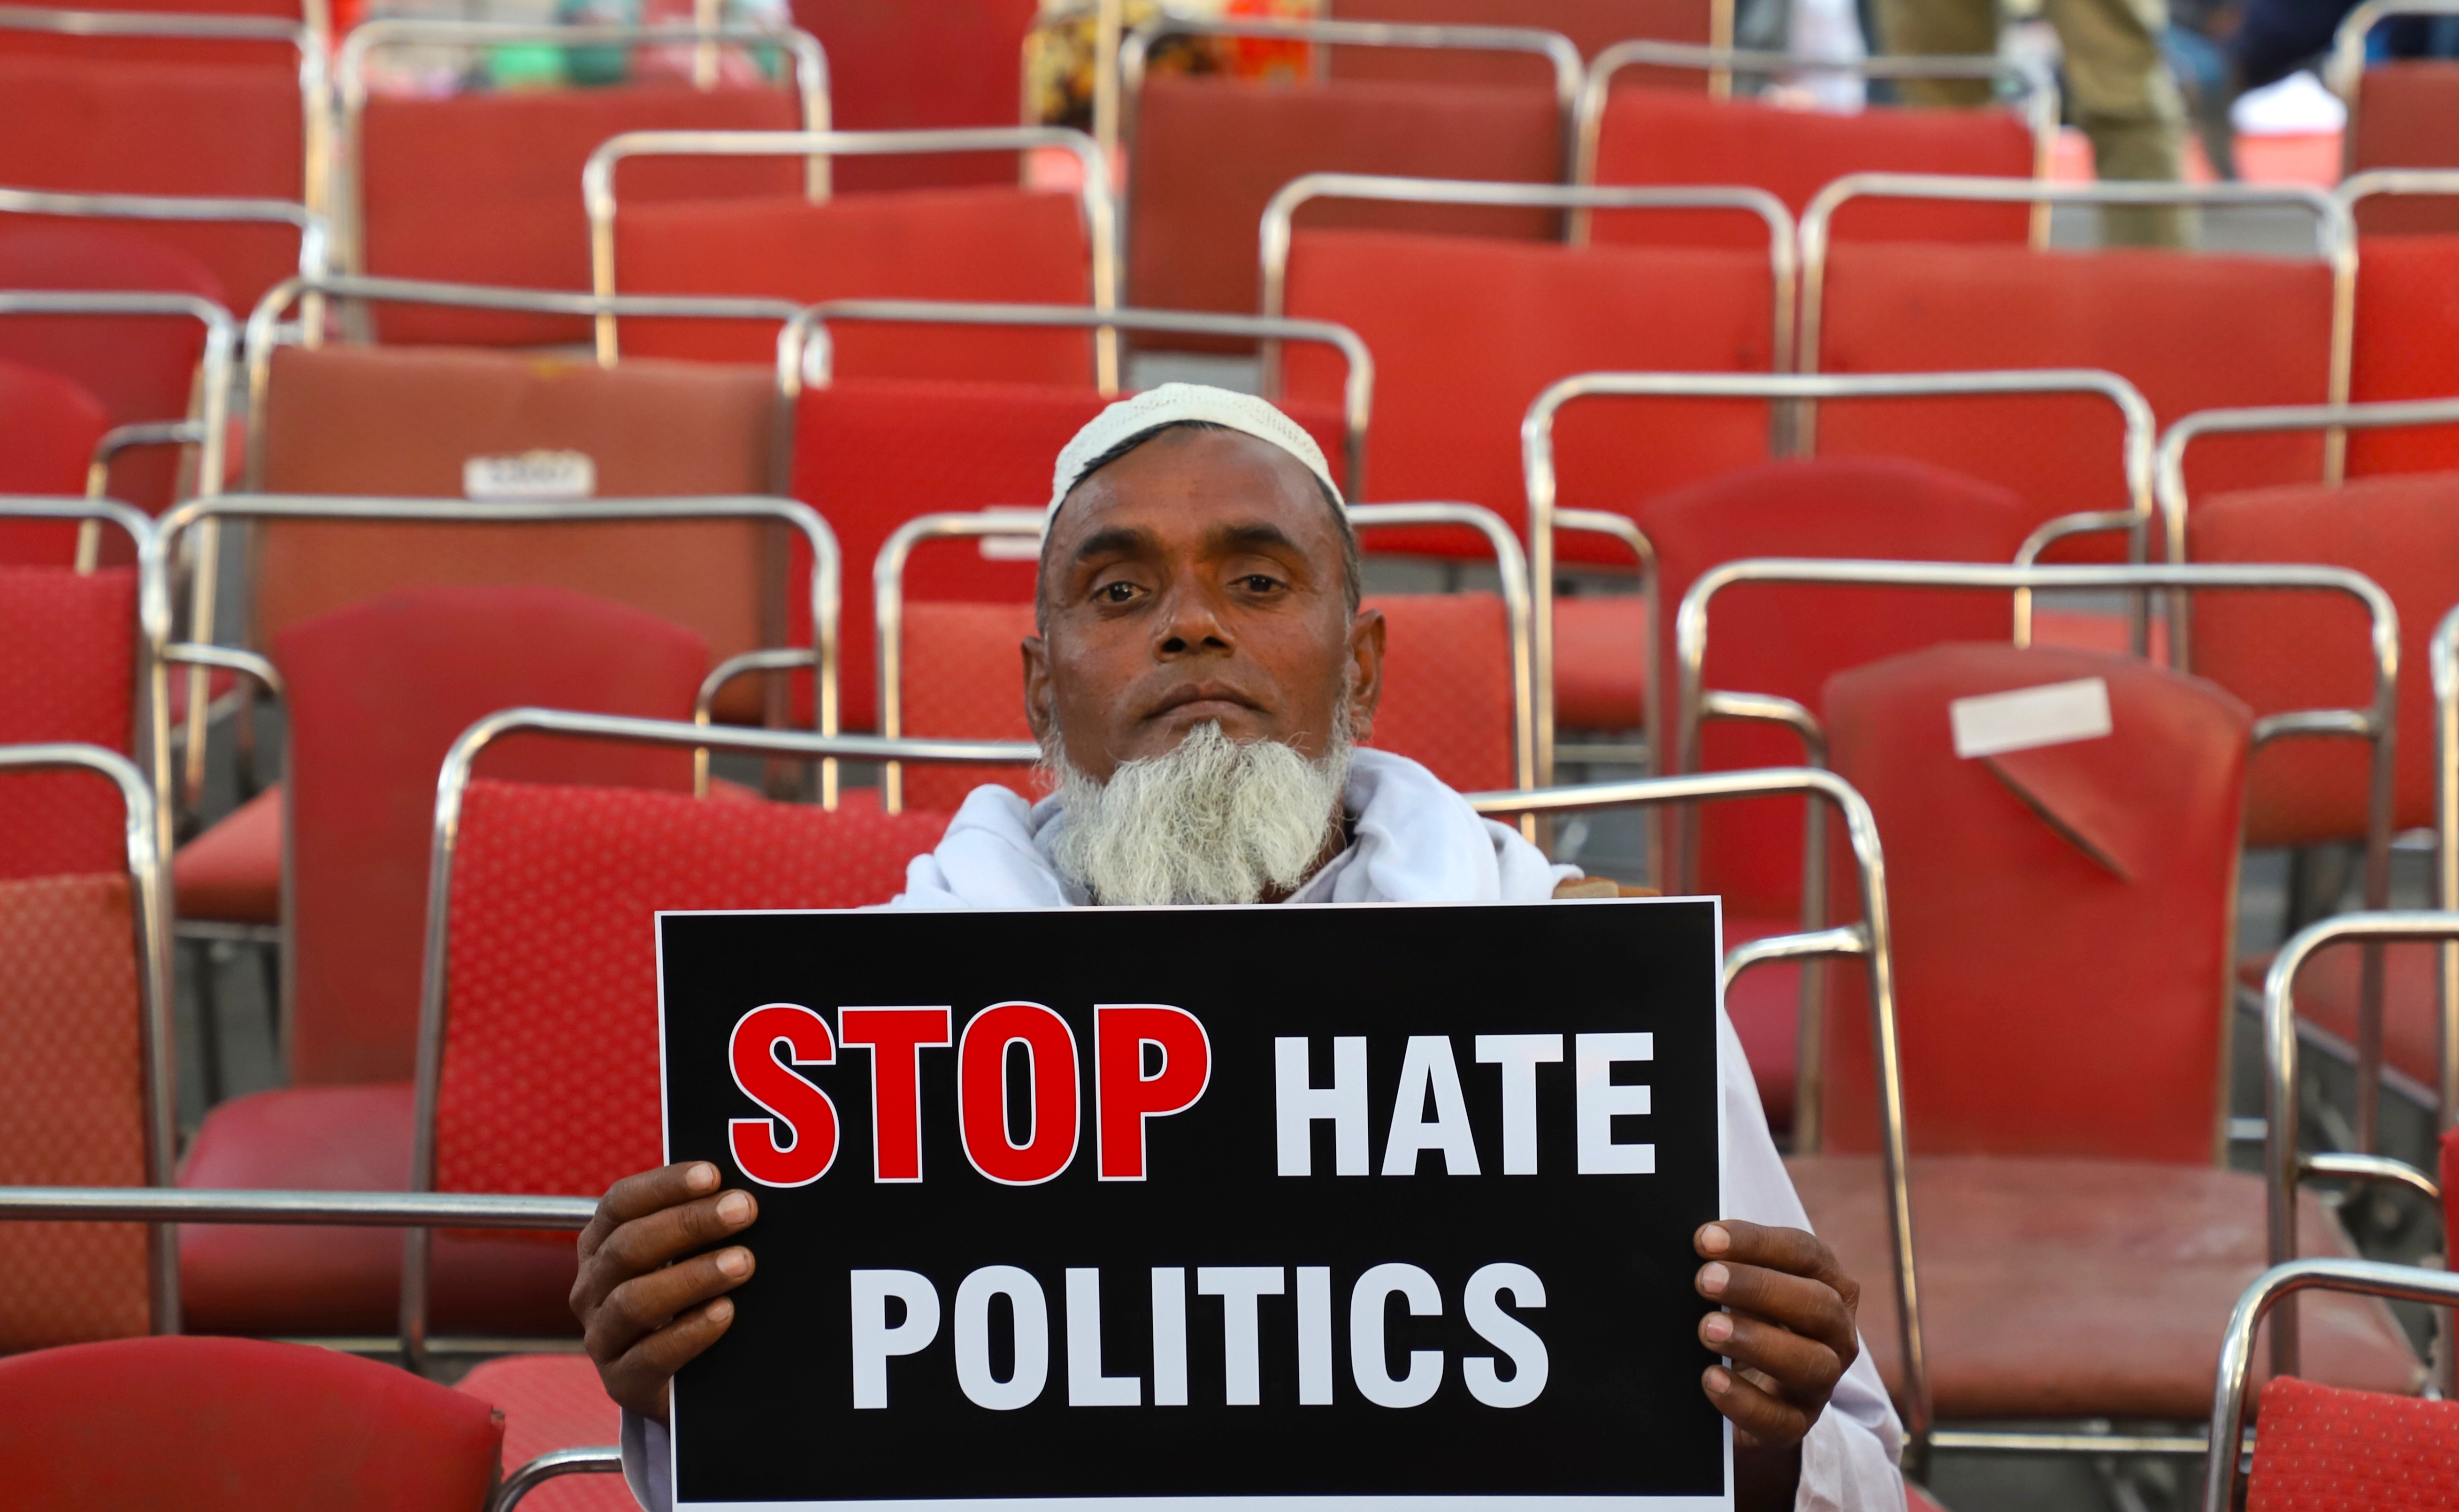 India just redefined its citizenship criteria to exclude Muslims